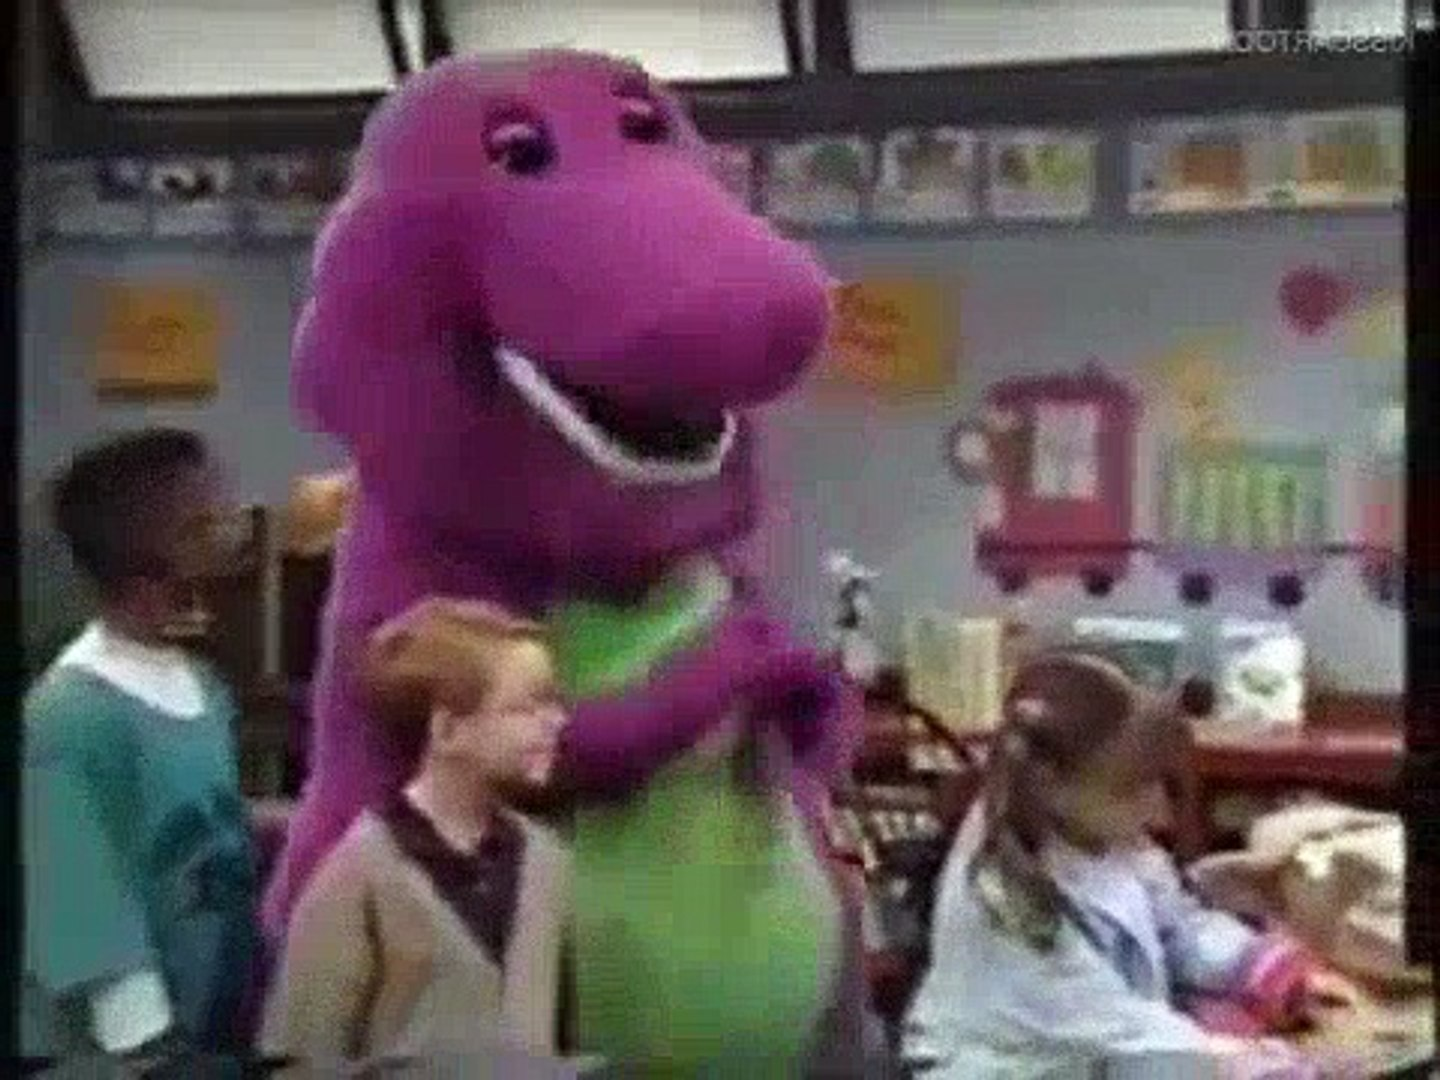 Barney & Friends S02E13 The Dentist Makes Me Smile - Dailymotion Video